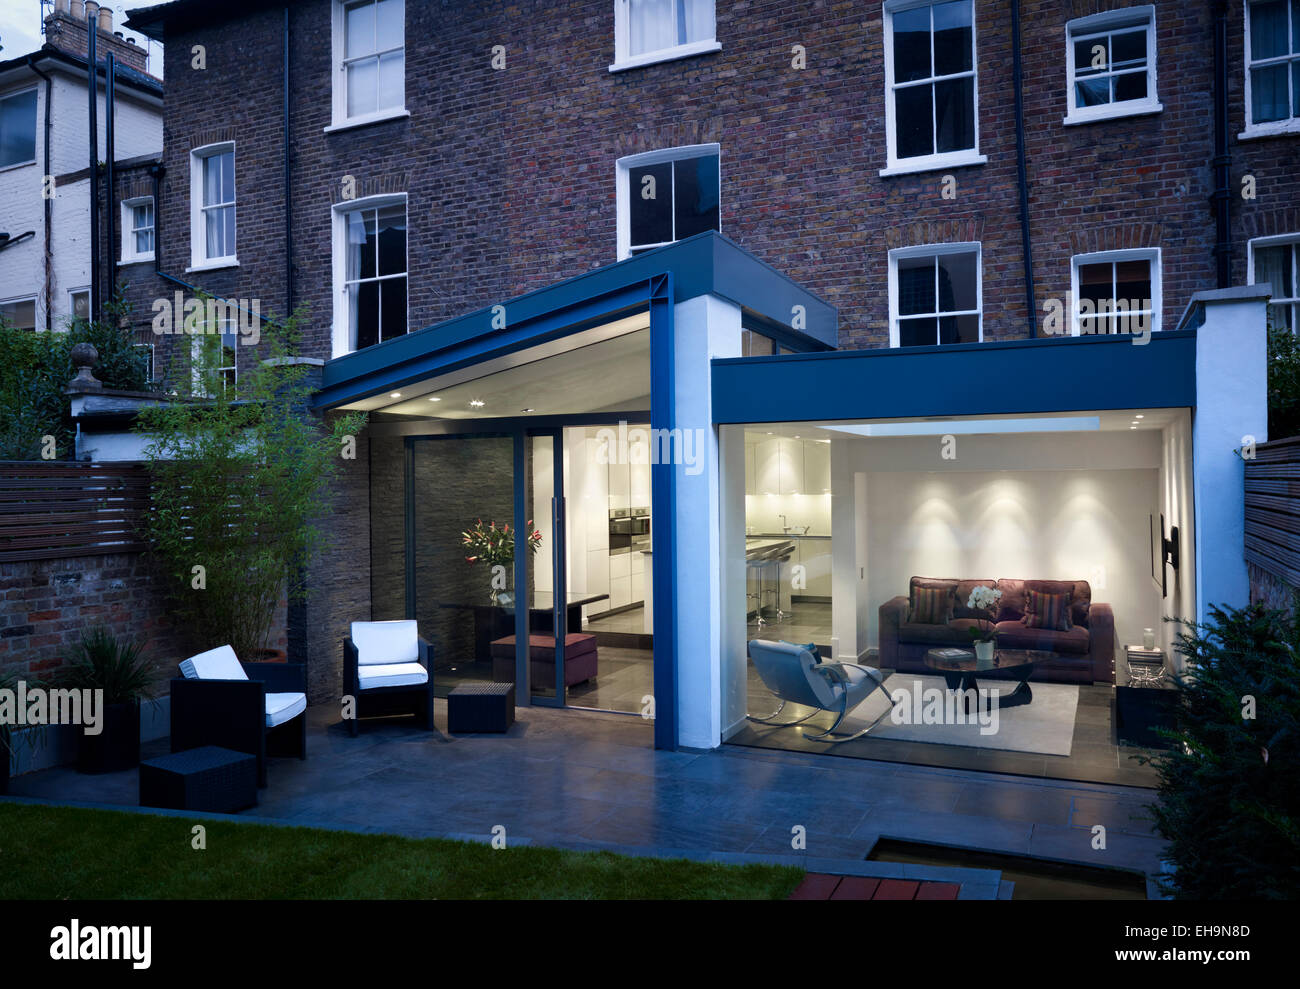 Exterior View Of Modern Extension With Glass Walls In Walham Grove Home, UK